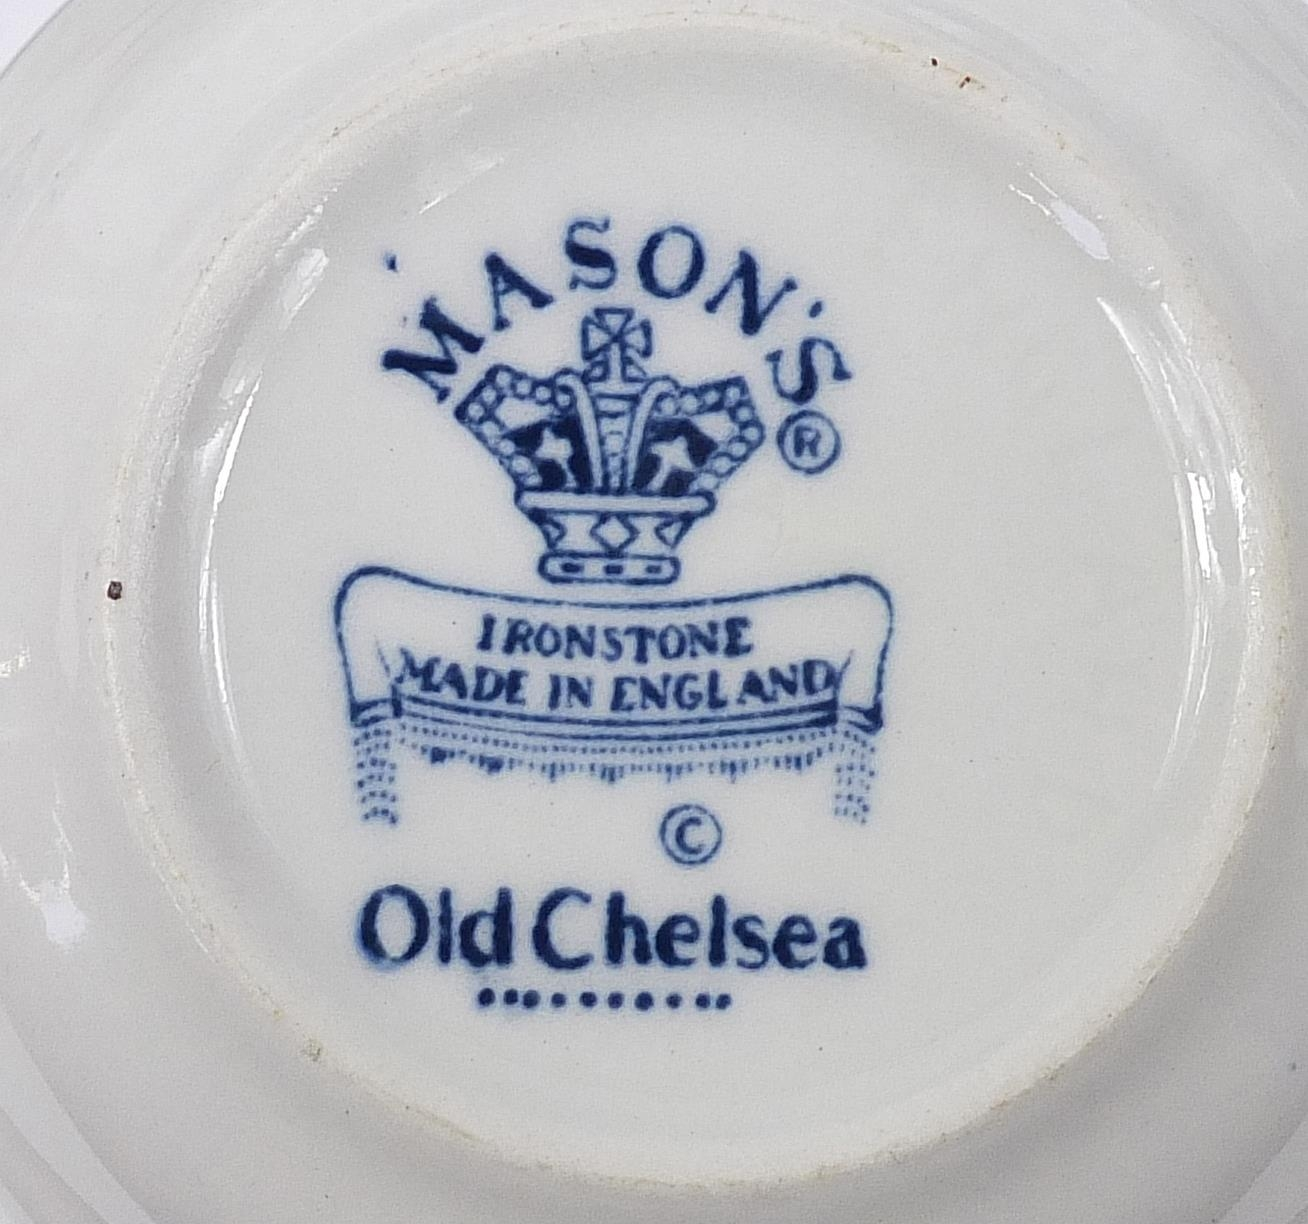 Collection of Furnivals & Masons Old Chelsea dinner and teaware including teapot and stand, cups - Image 5 of 5